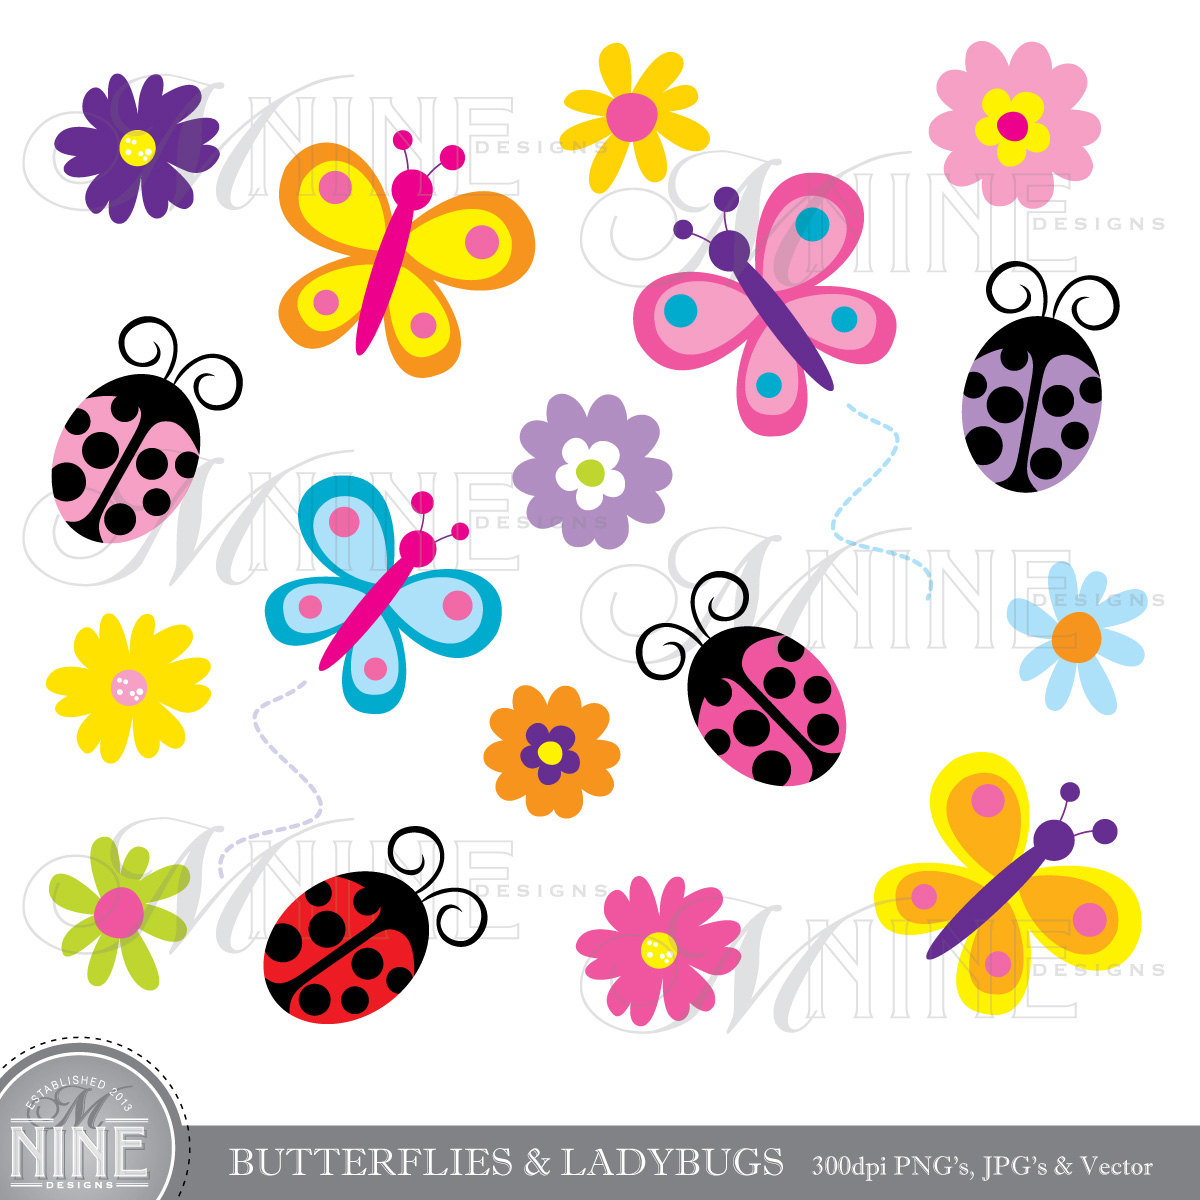 Butterfly clipart ladybug Clip Art Clip Ladybug Spring